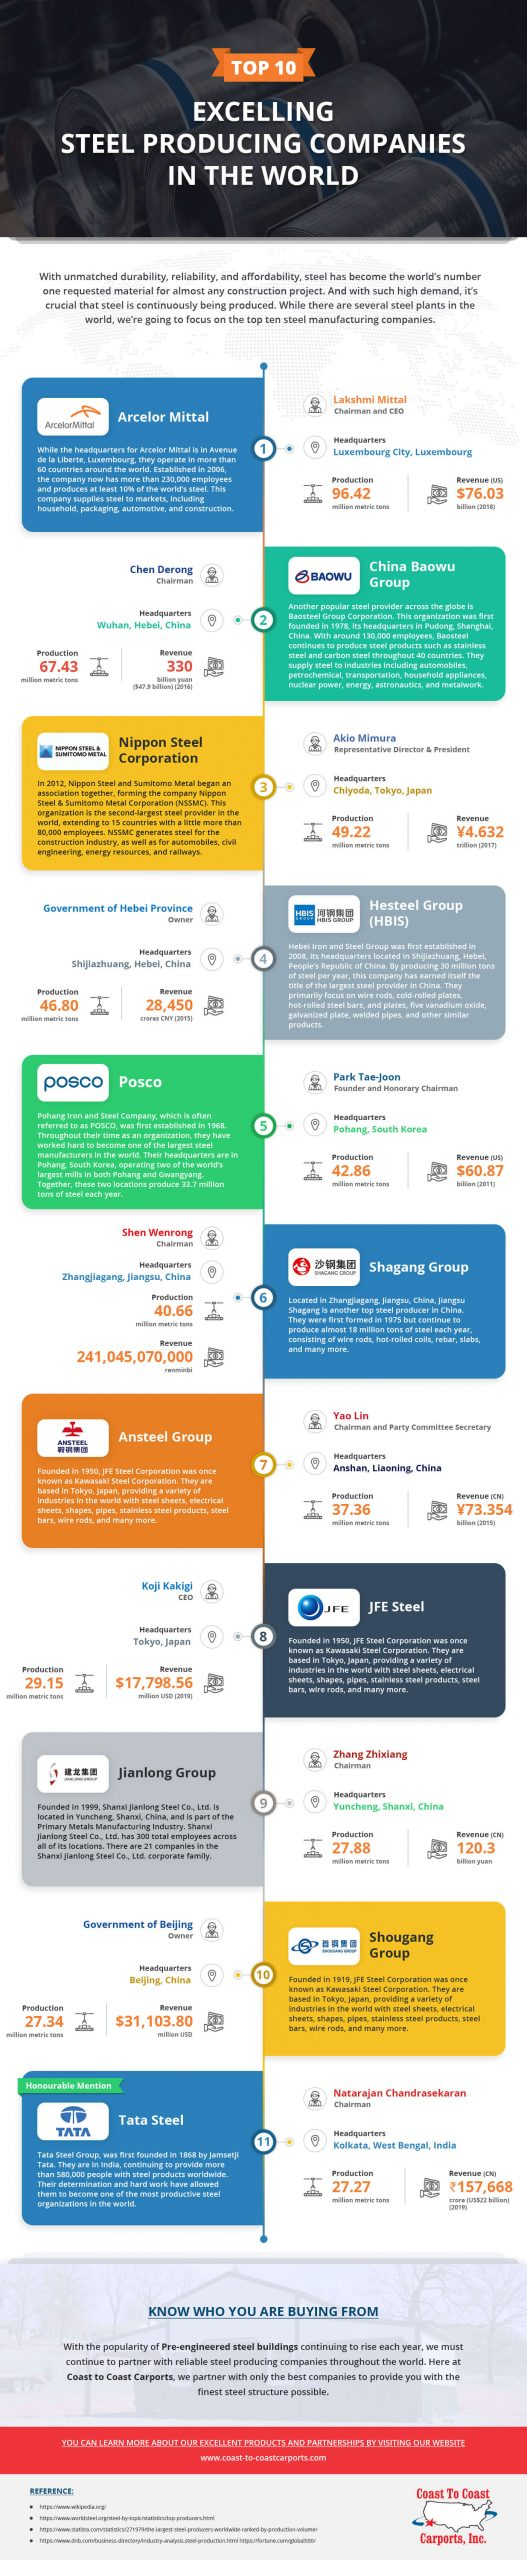 top 10 excelling steel producing companies